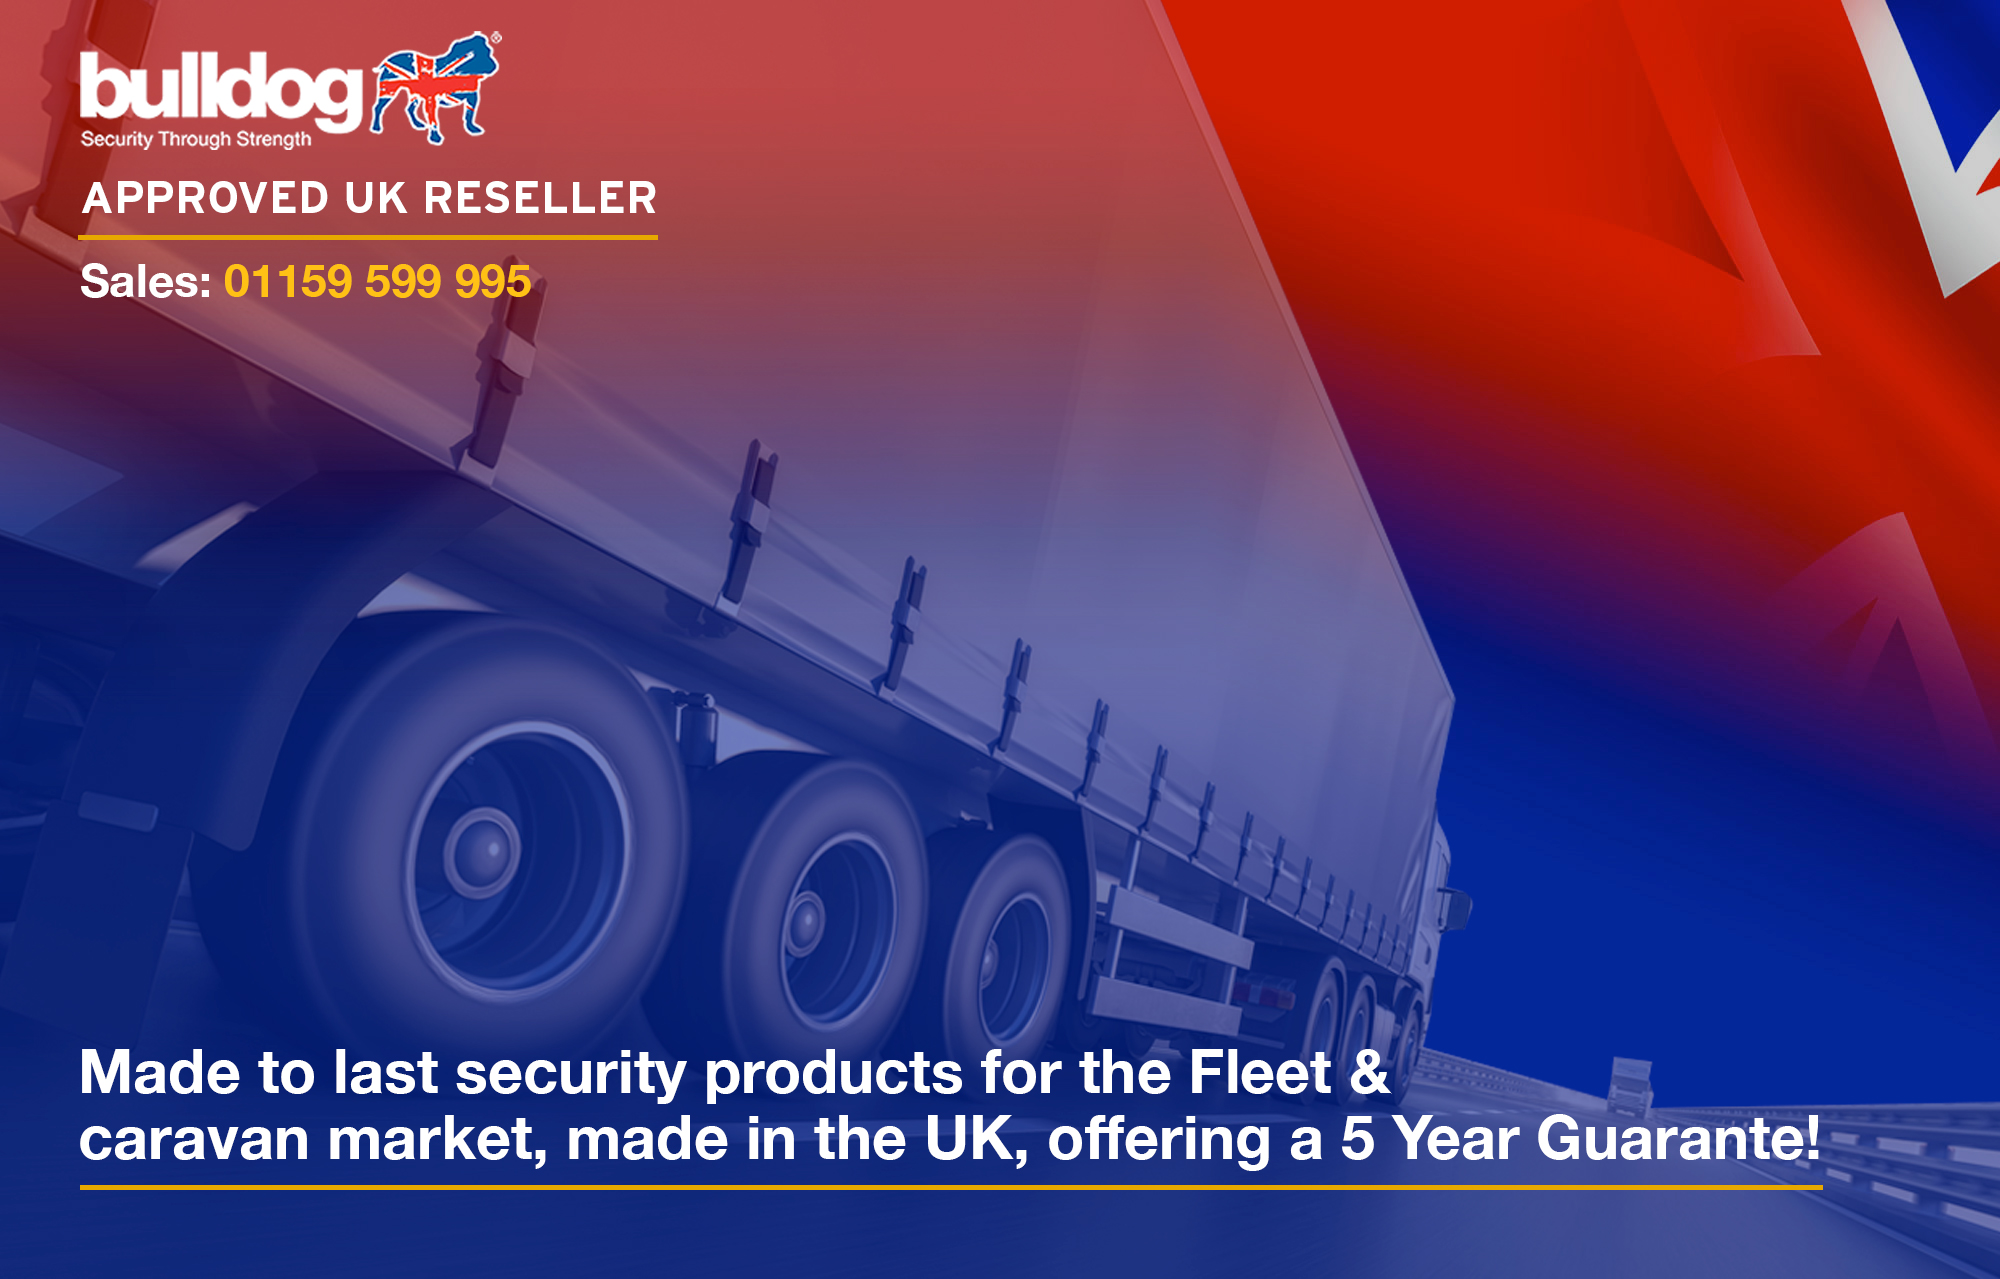 Bulldog Secure - Approved Distributor TTW - Made to last security Products for Car - Van- Fleet - Motorhome - HGV - Trailers - Offering a 5 Year Guarantee